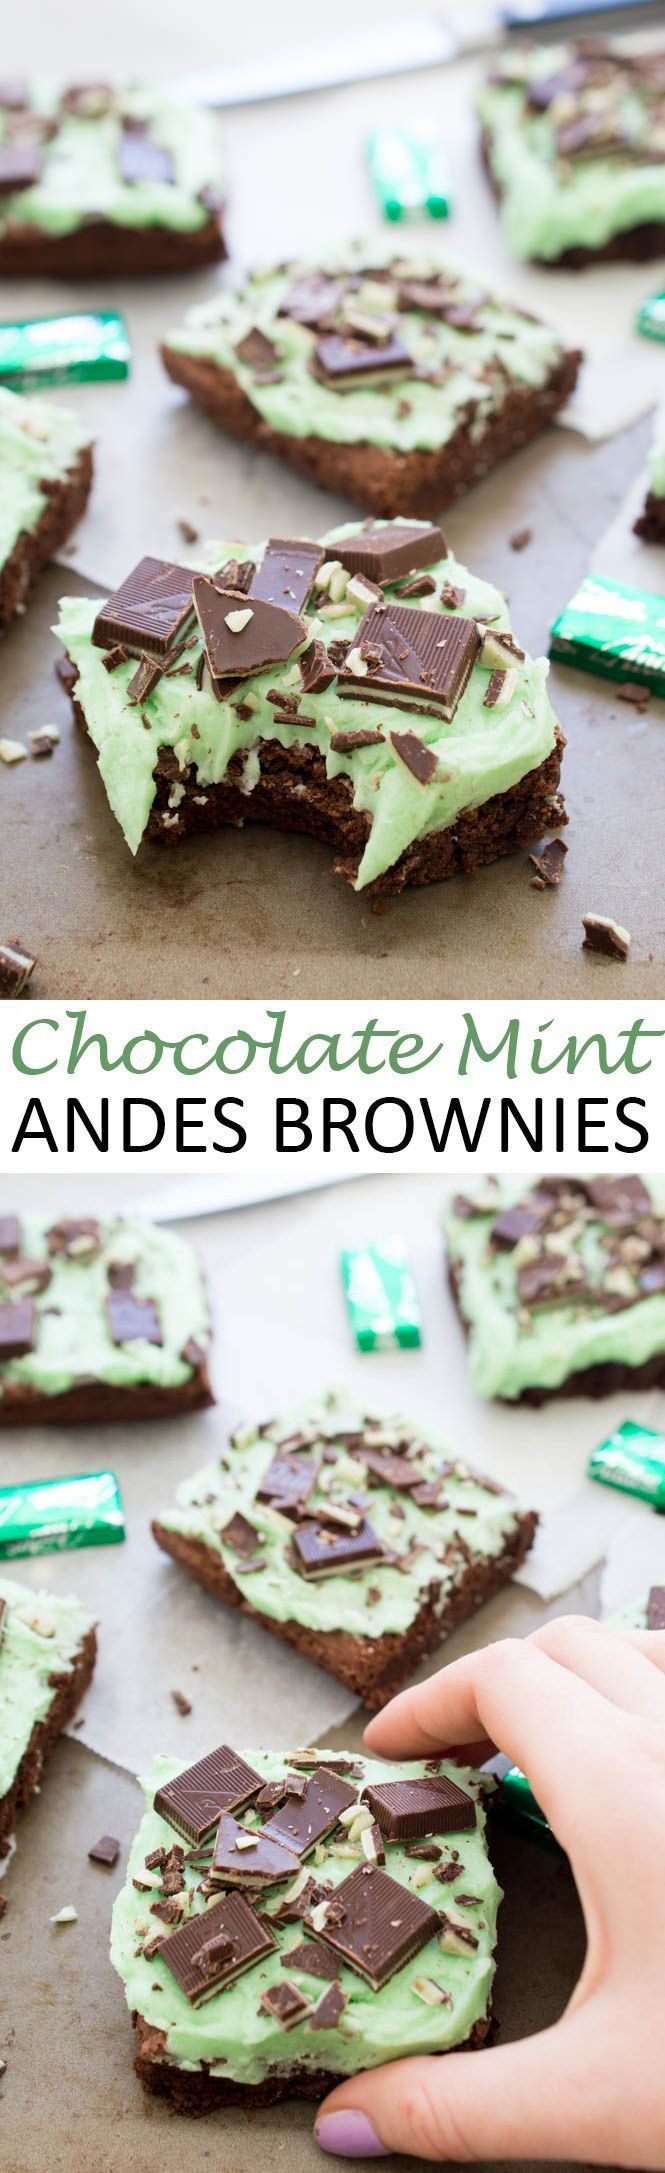 Andean brownies with mint and chocolate Andean brownies with mint and chocolate,